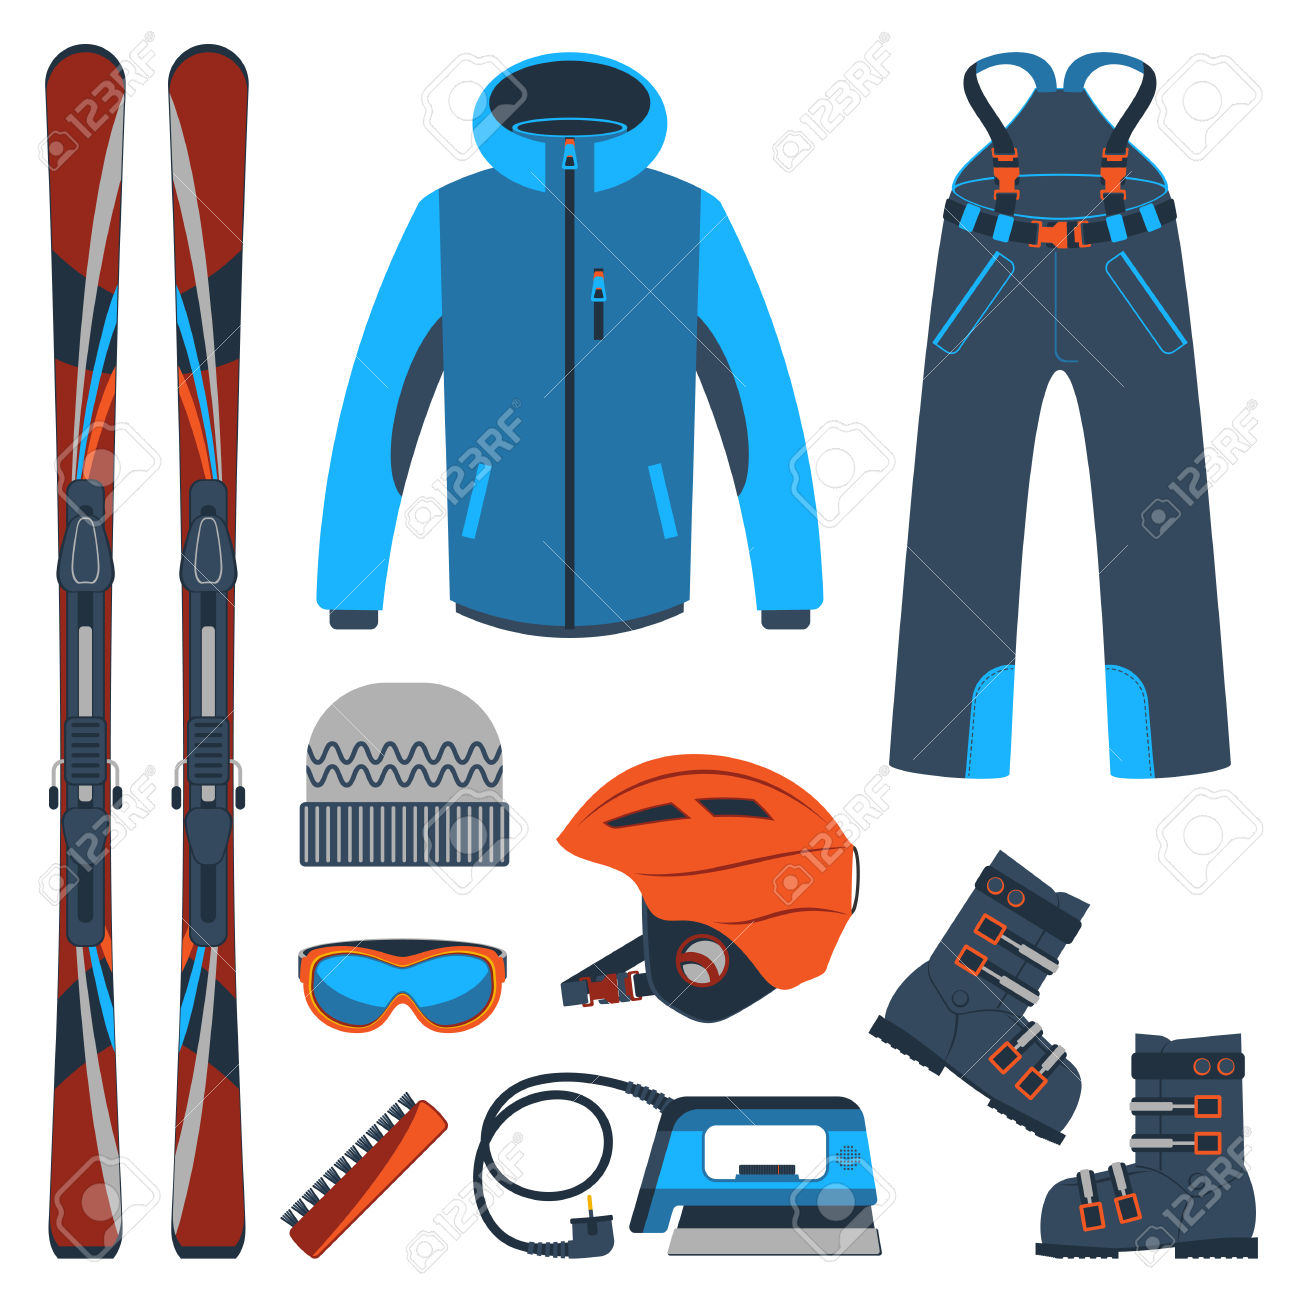 Ski Equipment Or Ski Kit. Extreme Winter Sports. Ski, Goggles.